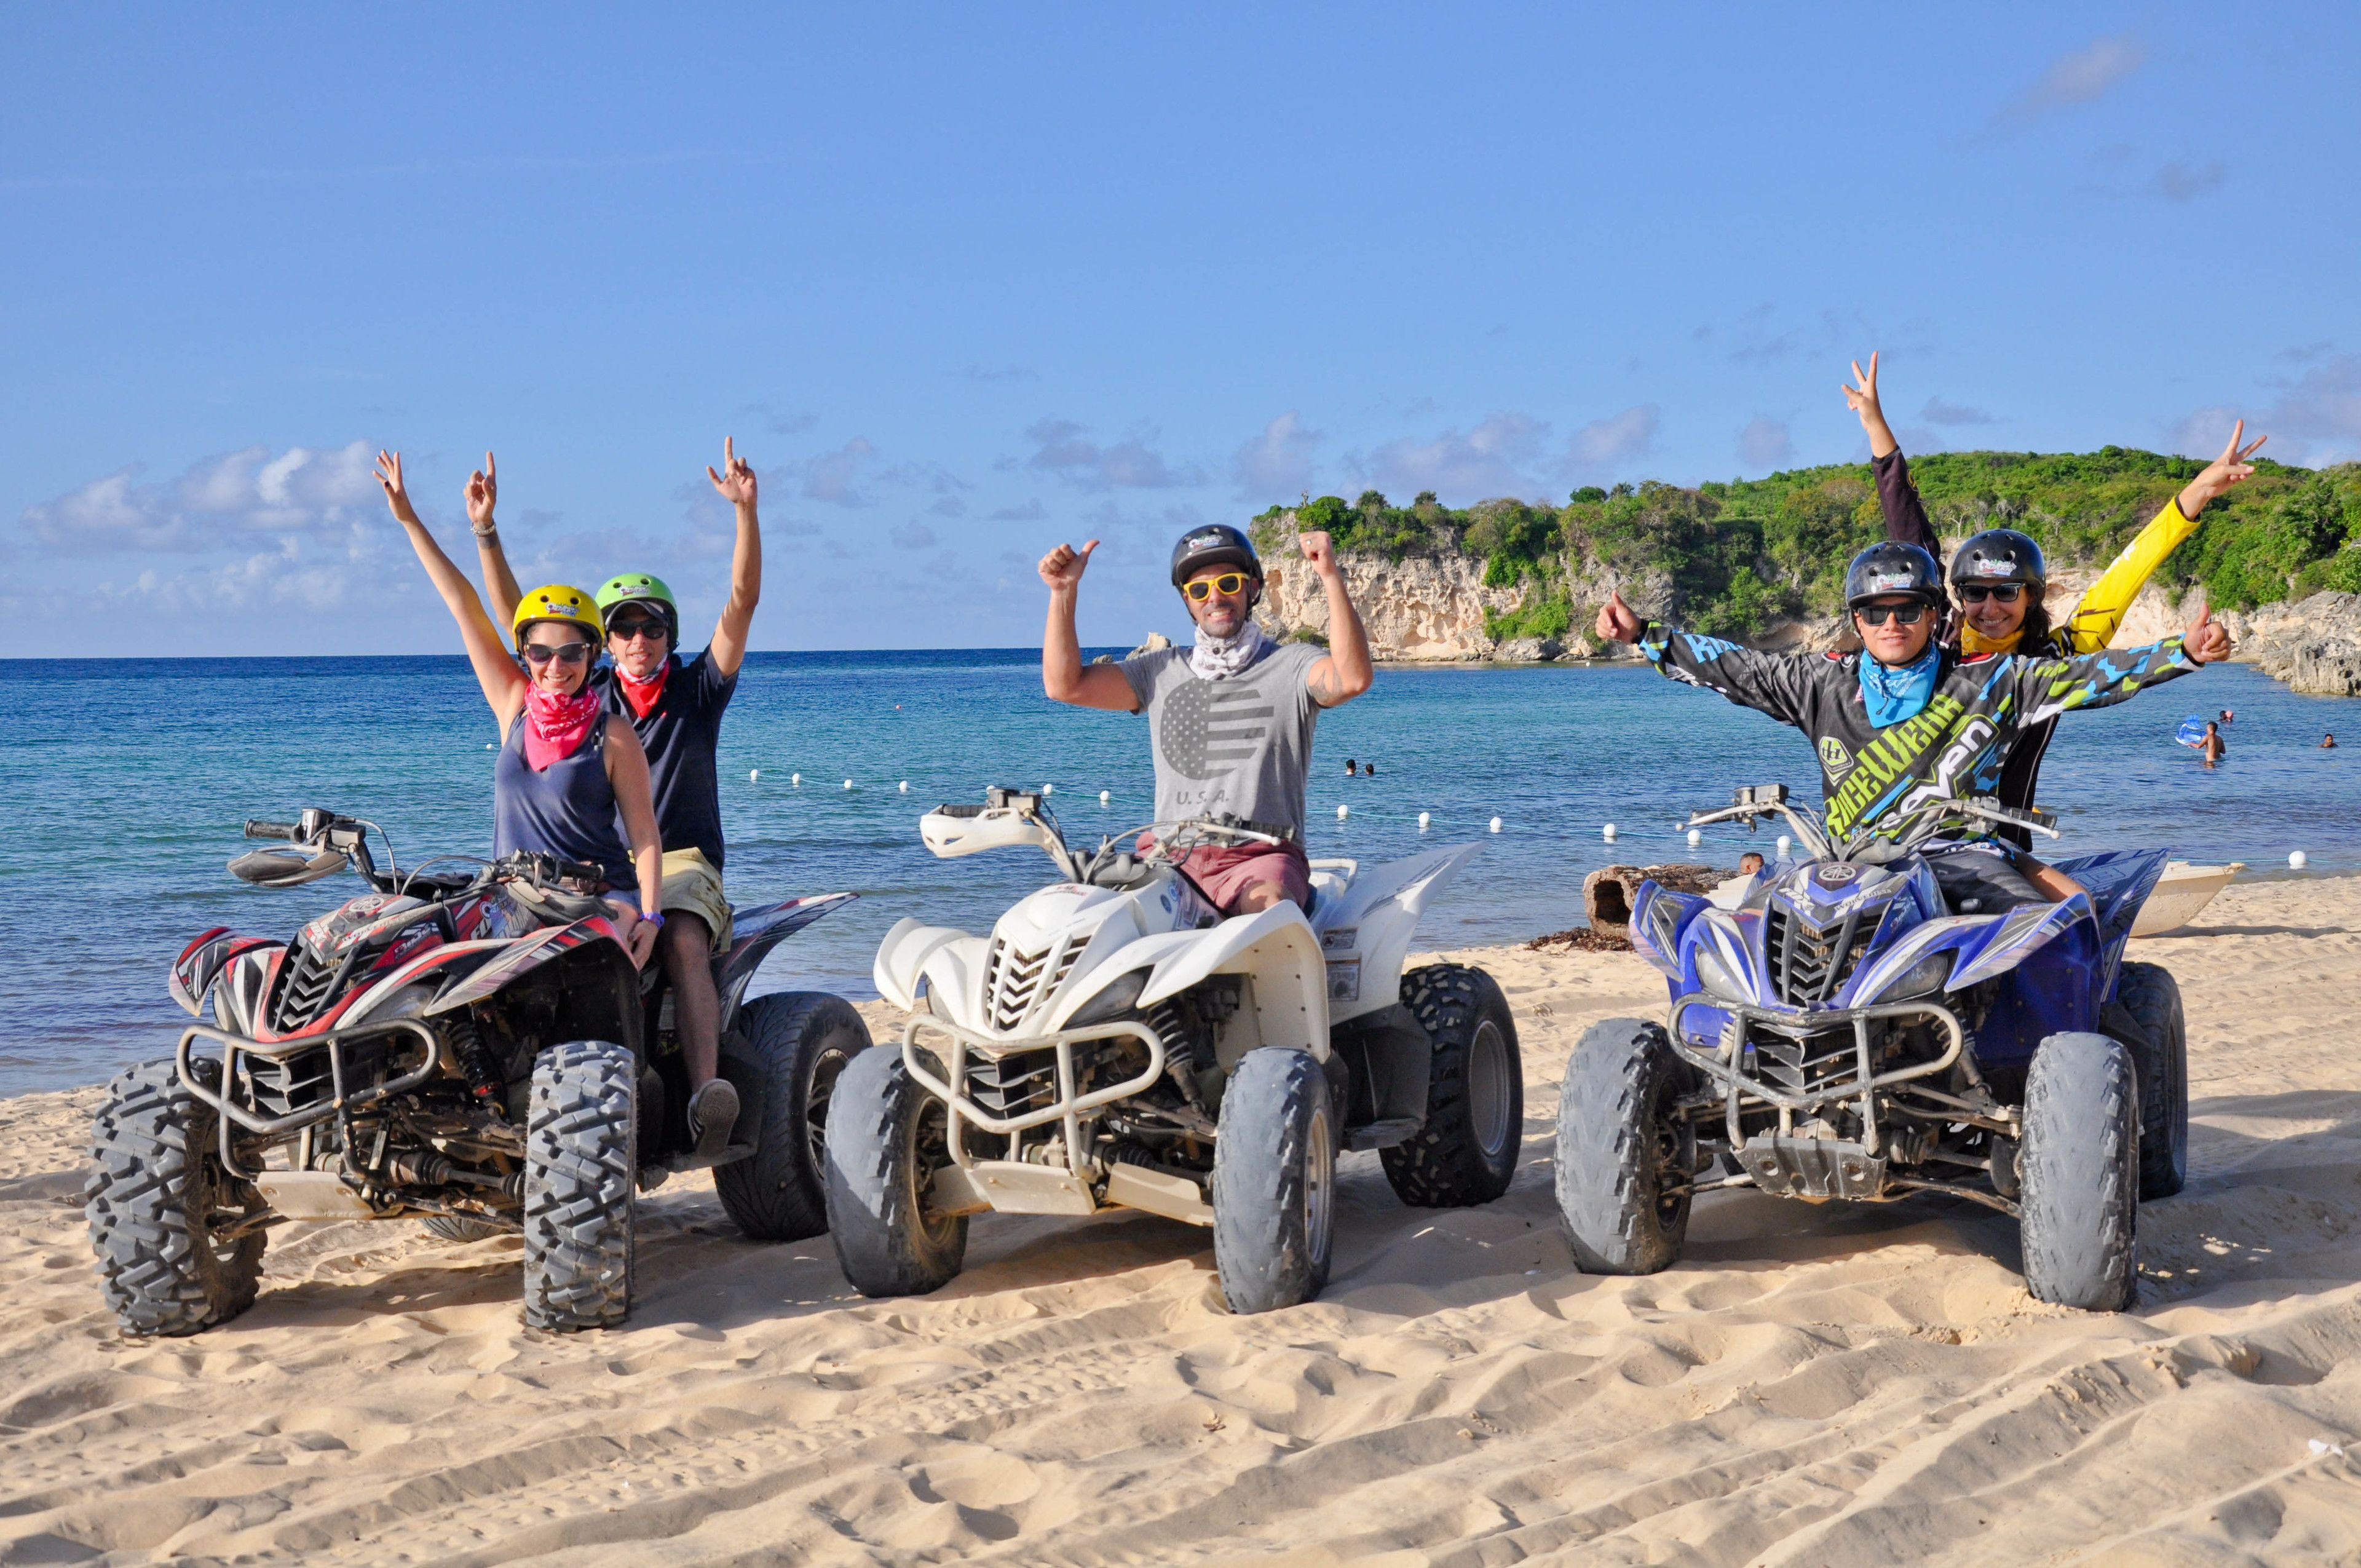 ATV riding group on the beach in Punta Cana